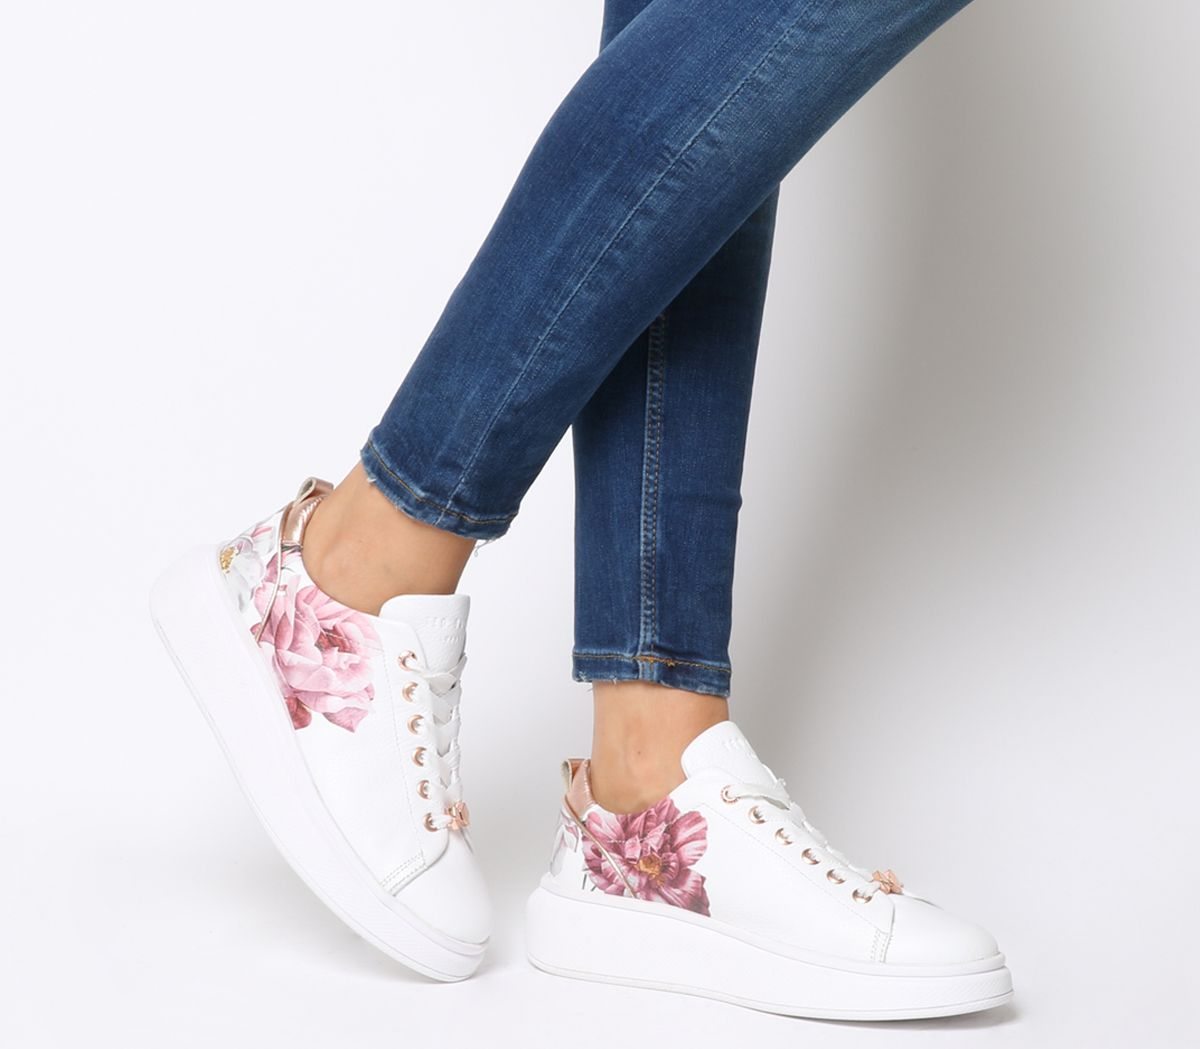 e1ca606d Ted Baker Ailbe 2 Sneakers White Iguazu Leather - Hers trainers